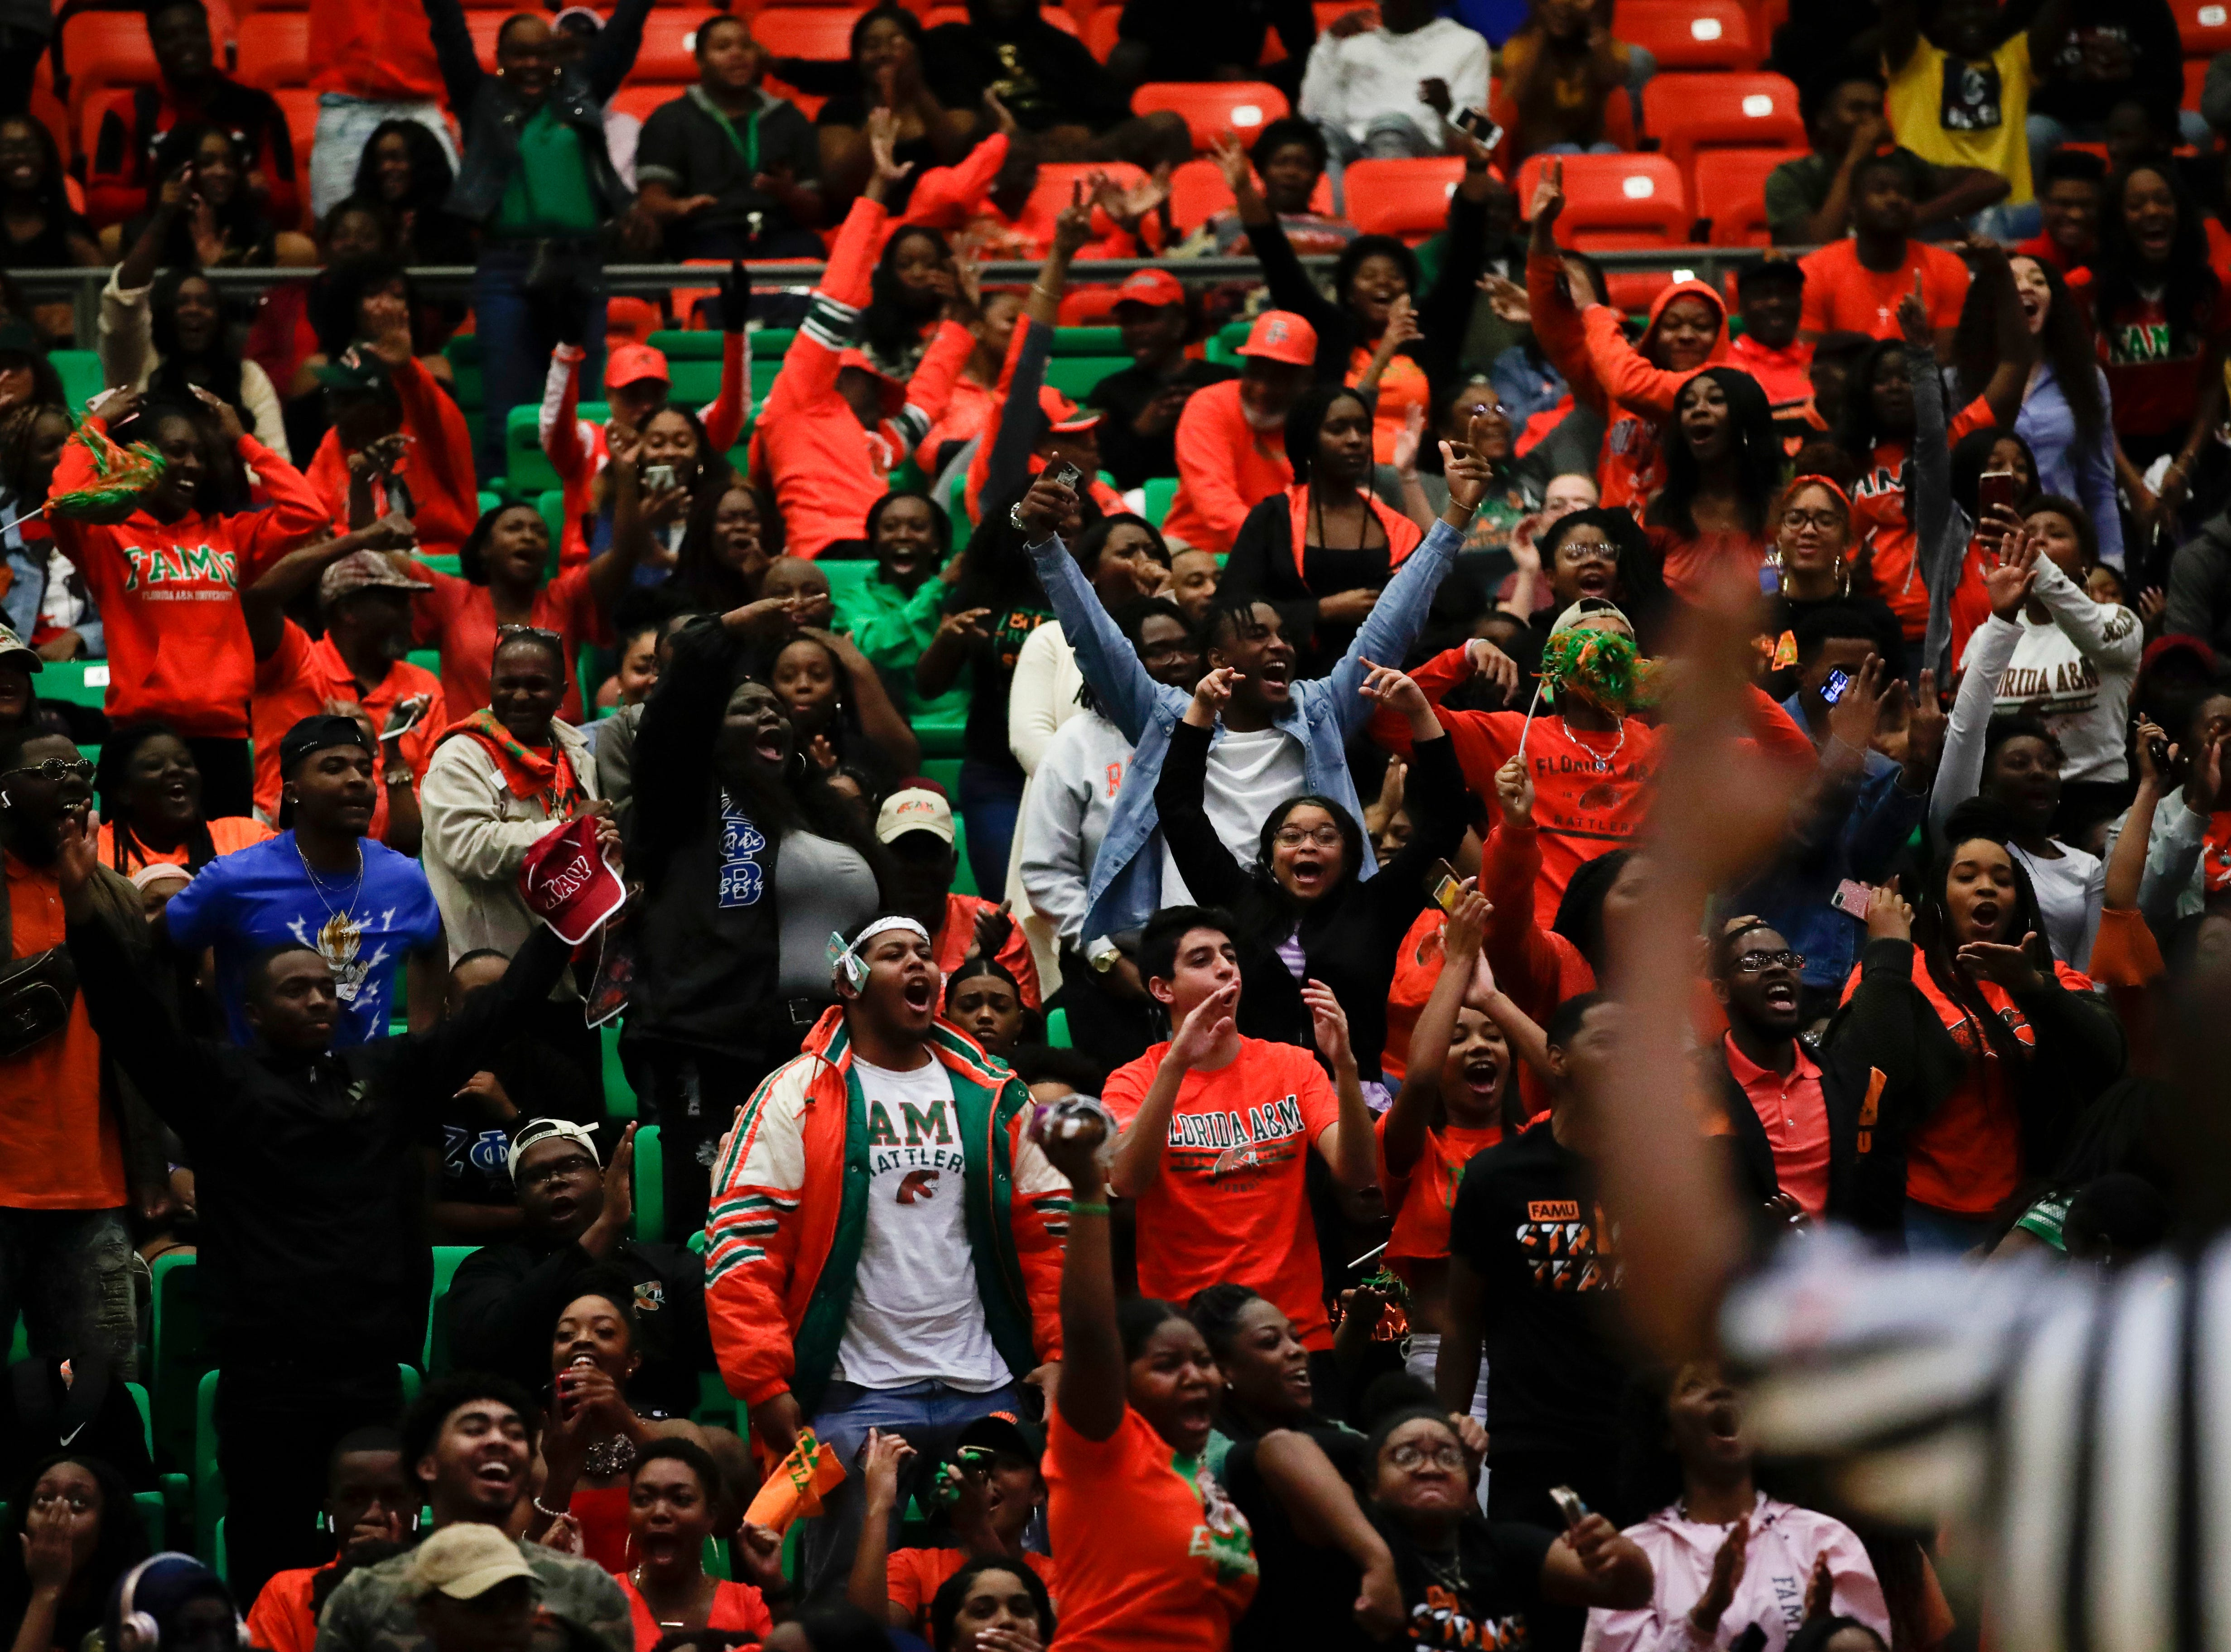 The Florida A&M student section cheers after Justin Ravenel makes a three point shot of the glass at the buzzer to end the second half during a game between FAMU and North Carolina Central at the Alfred Lawson Jr. Multipurpose Center Monday, Feb. 4, 2019.